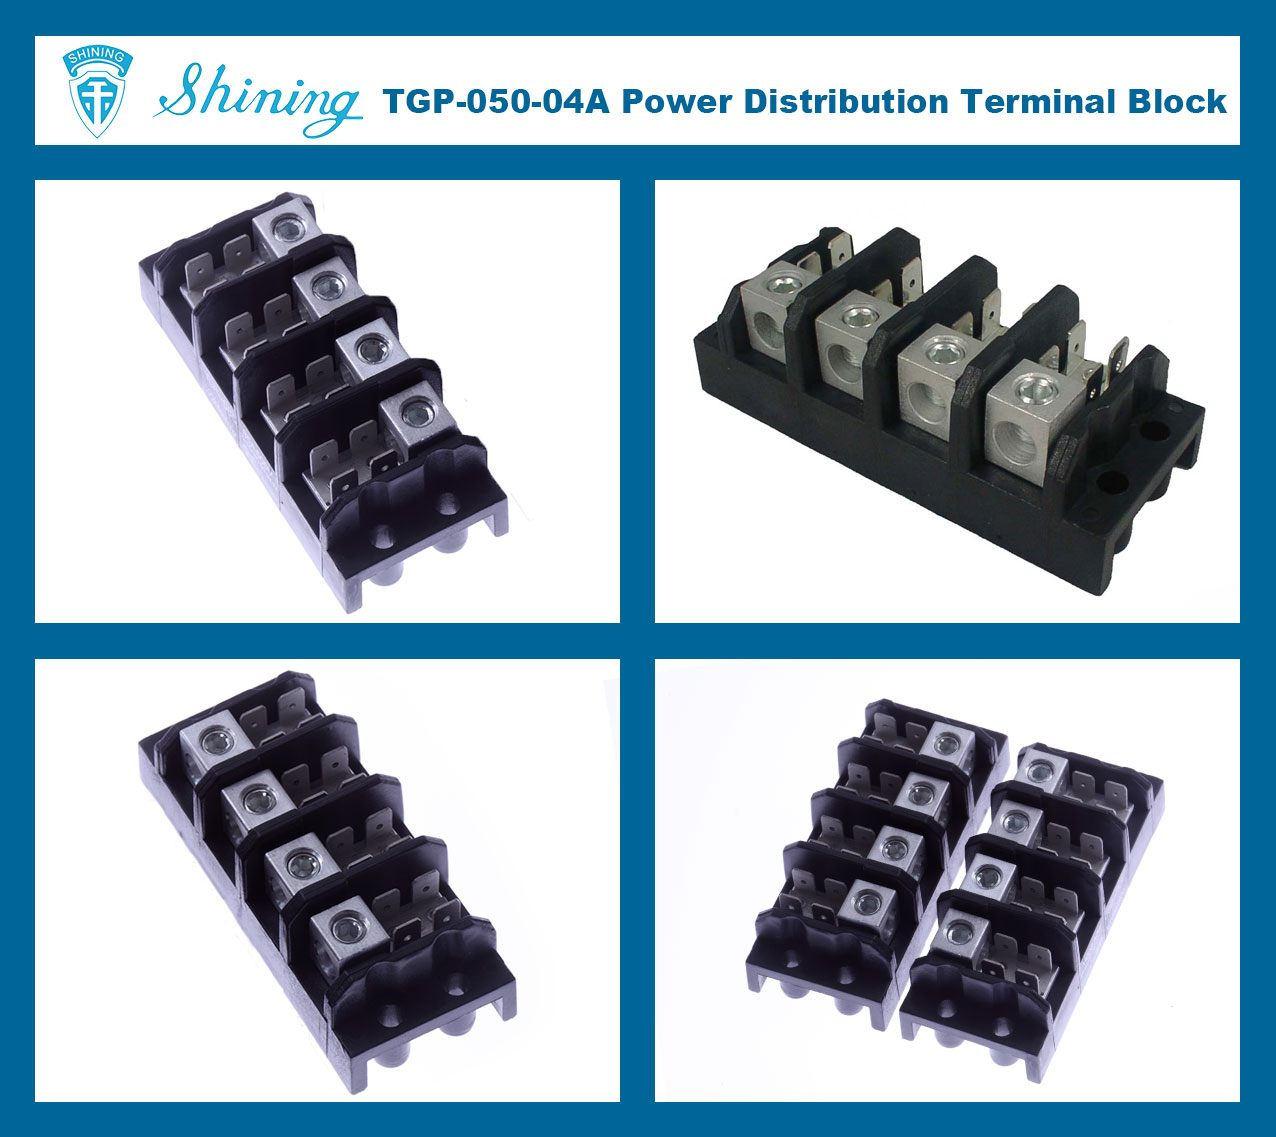 TGP-050-04A 600V 50A 4 Pole Electrical Power Terminal Block